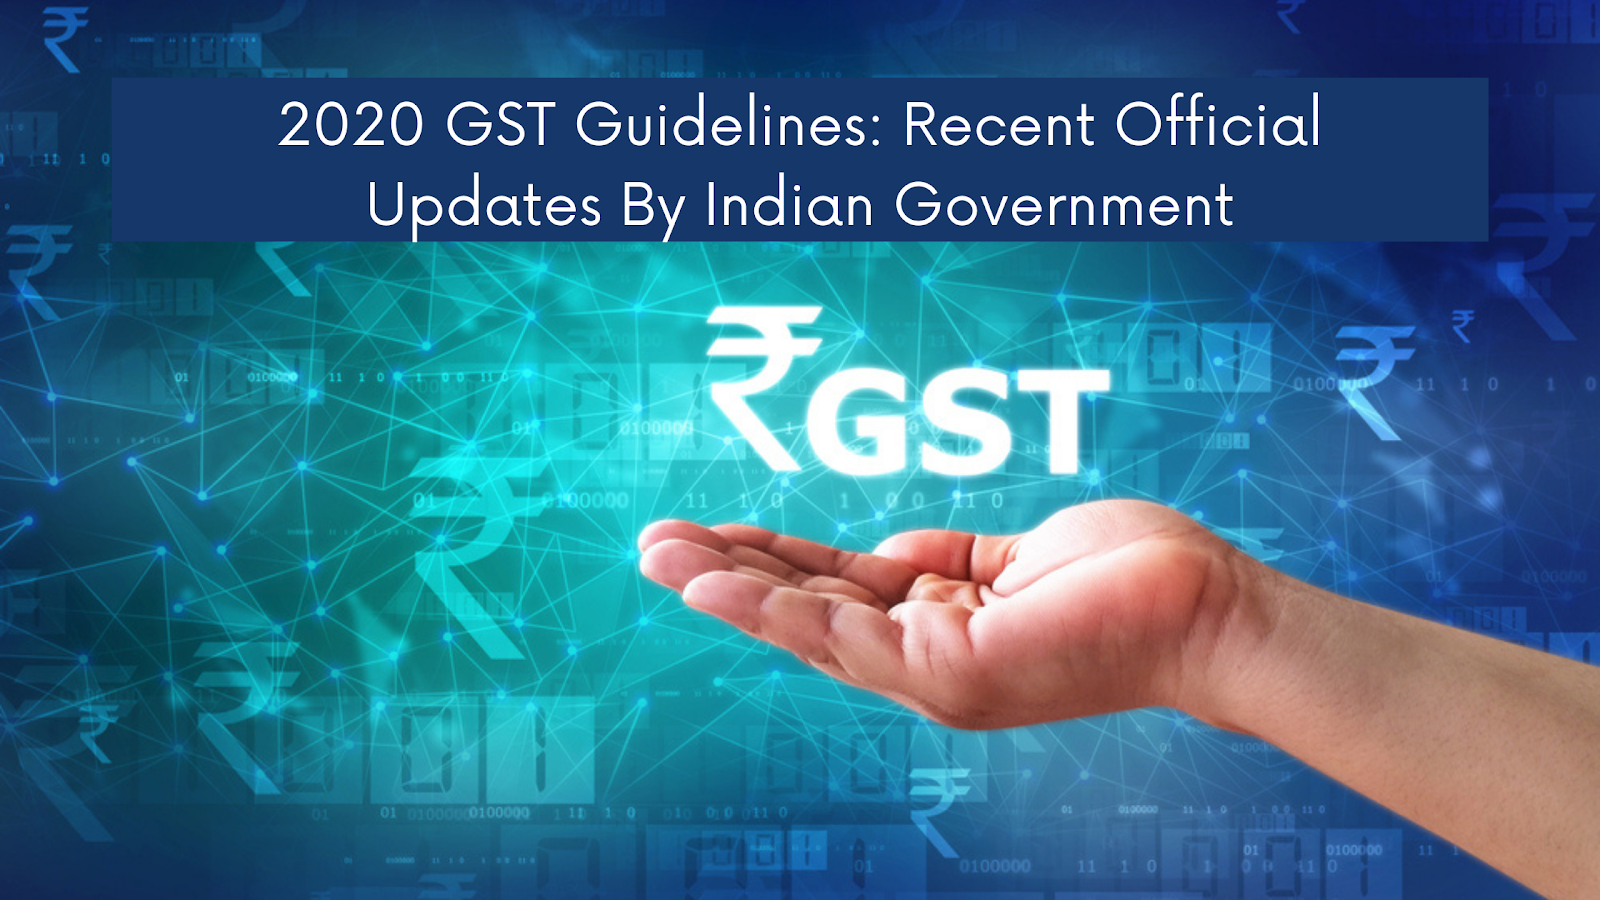 2020 GST Guidelines – Most Important Highlights by Indian Govt.